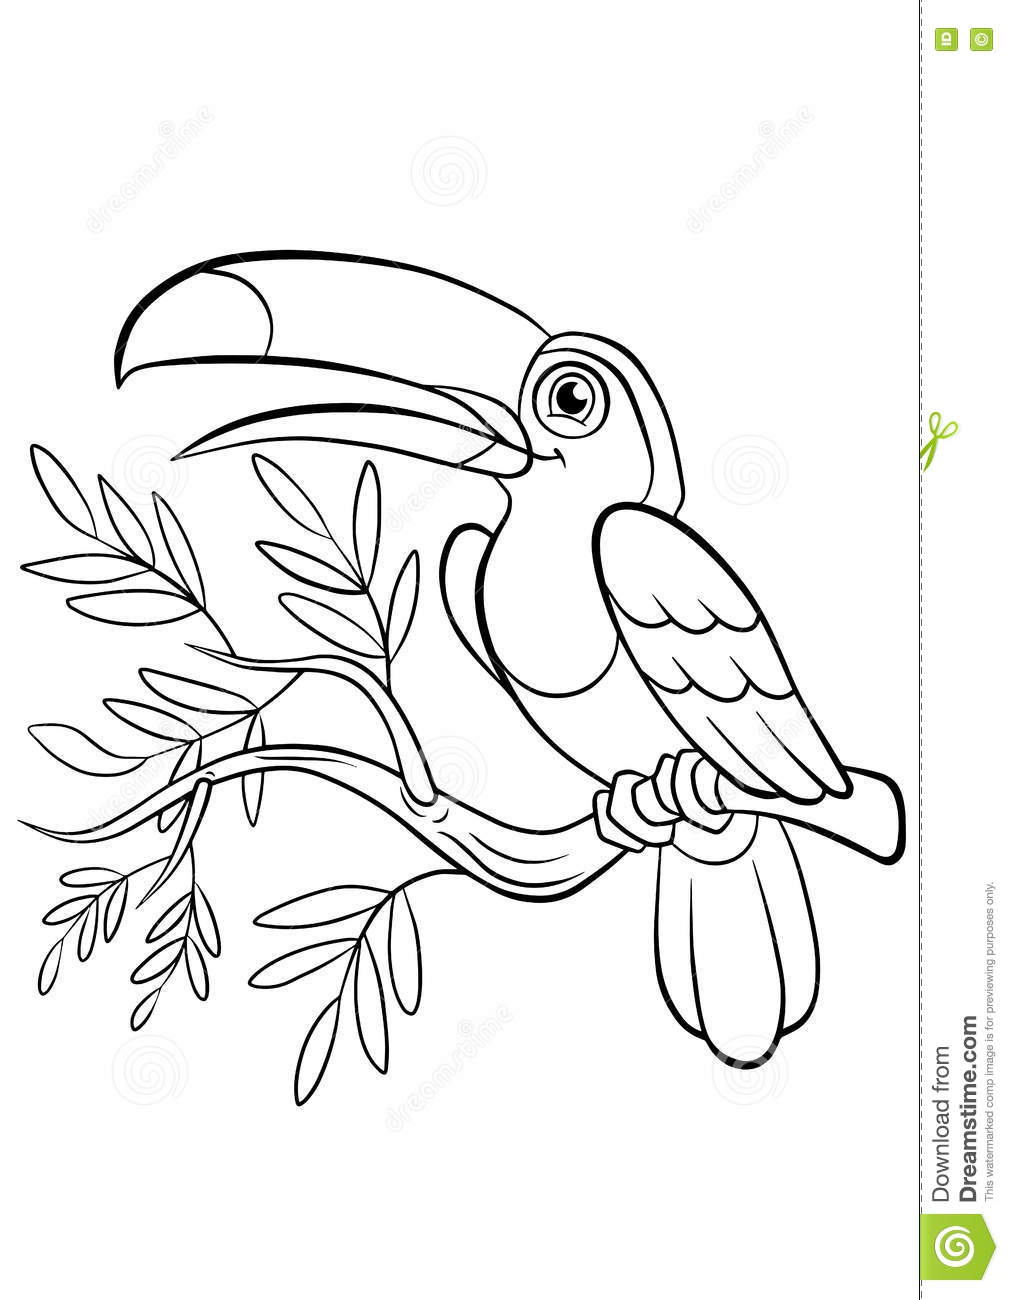 coloring pages birds little cute toucan stock vector image